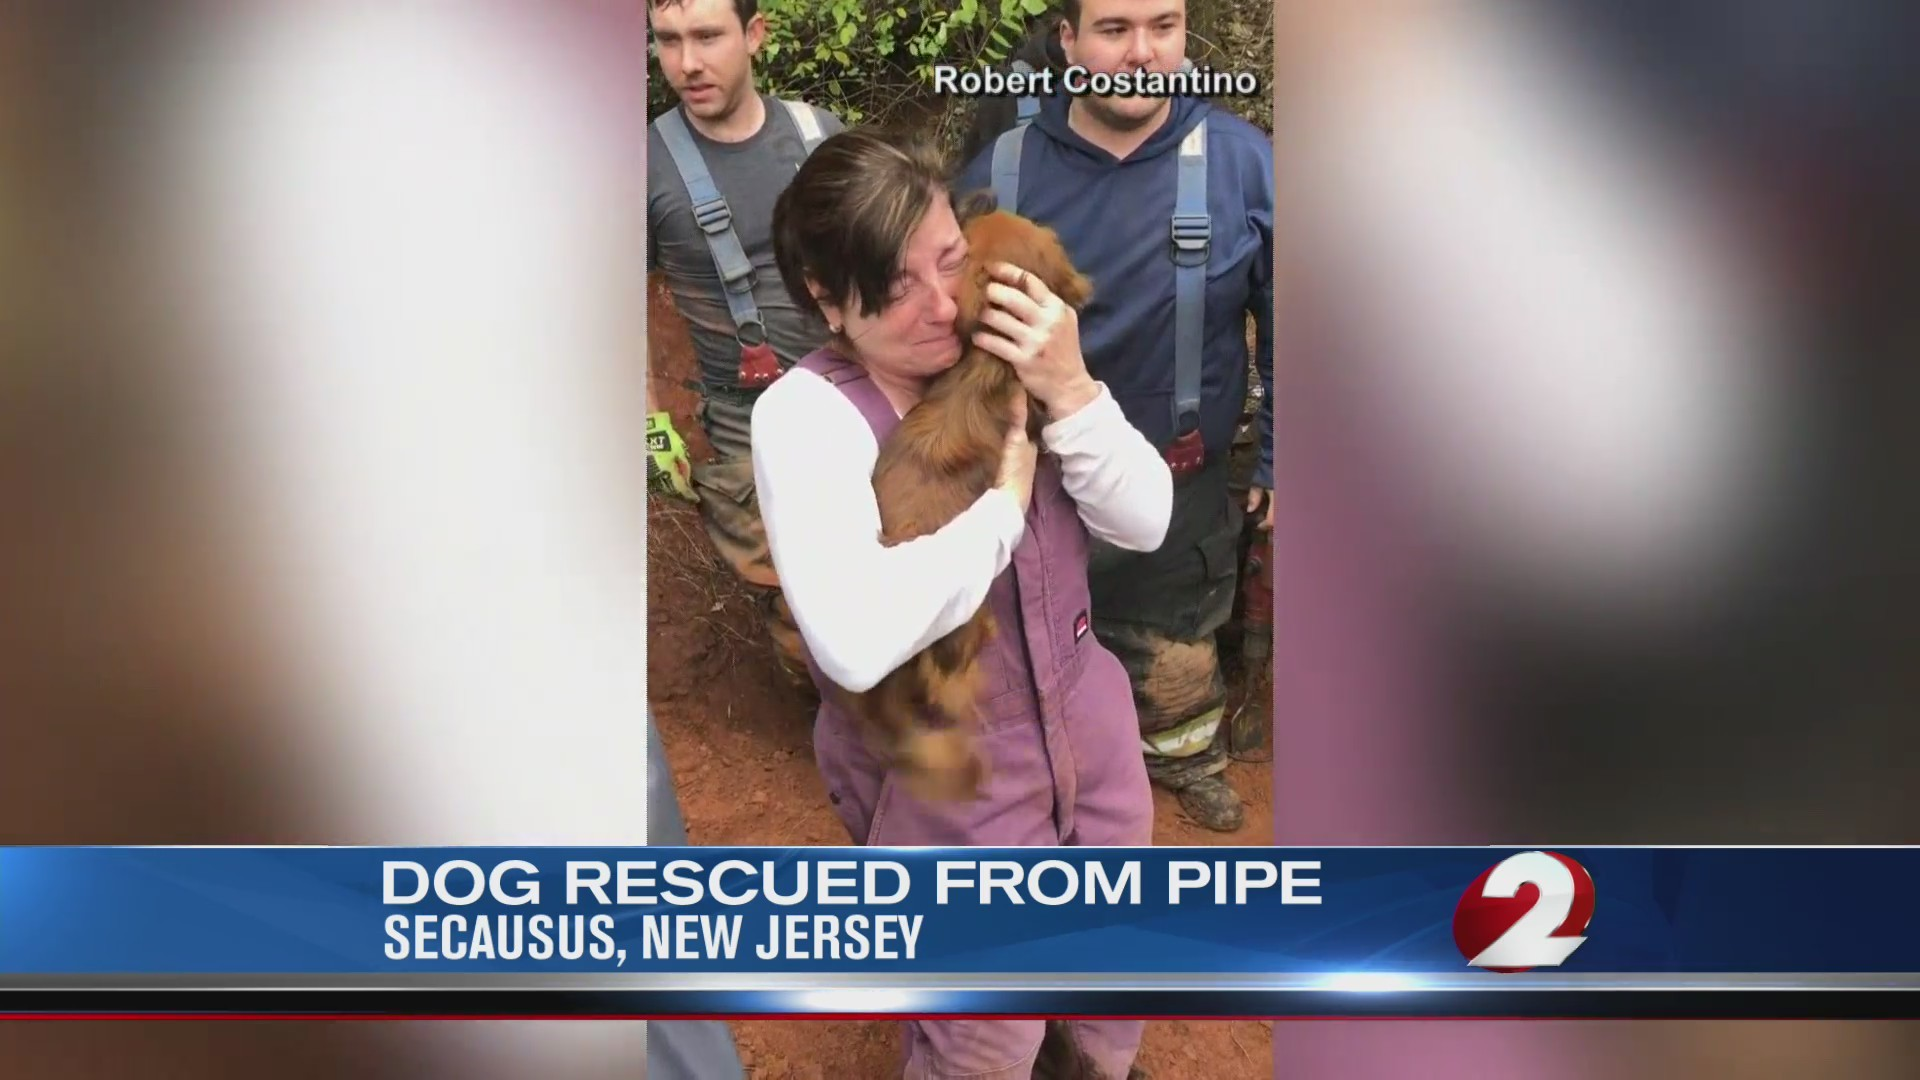 Dog rescues from pipe in New Jersey